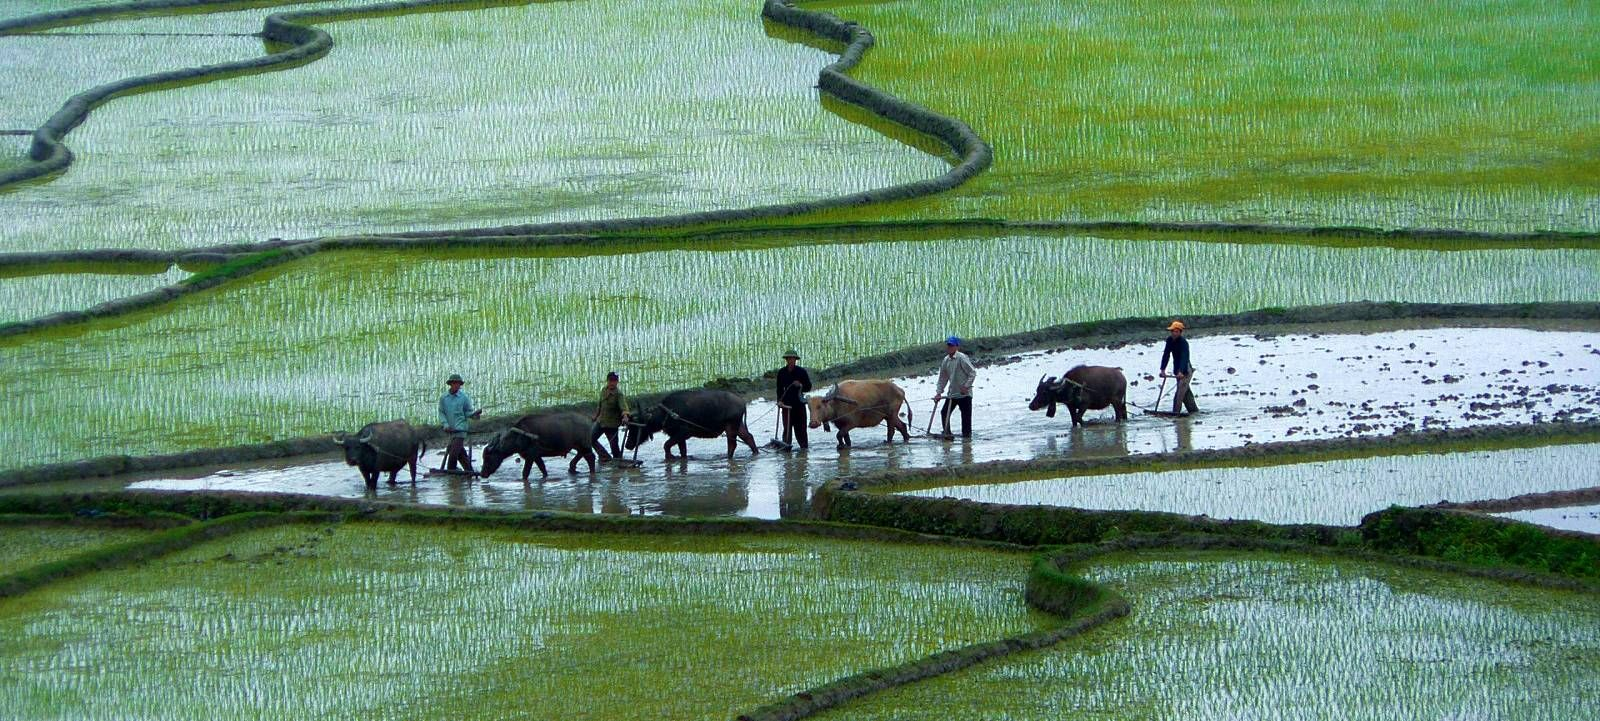 Local farmers in Vietnam